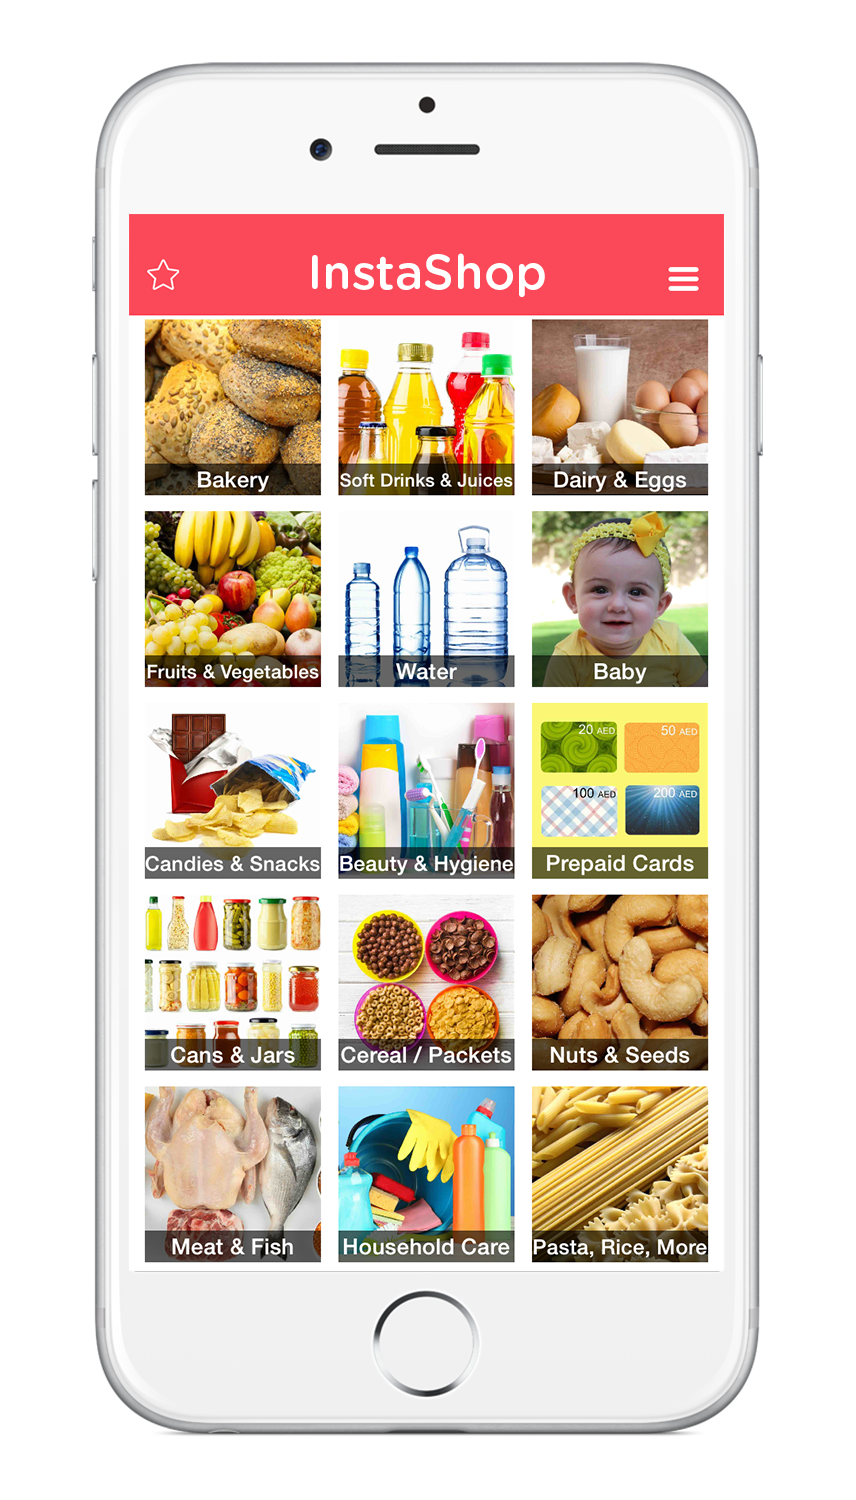 UAE-Based Online Grocery Startup InstaShop Raises Funds From